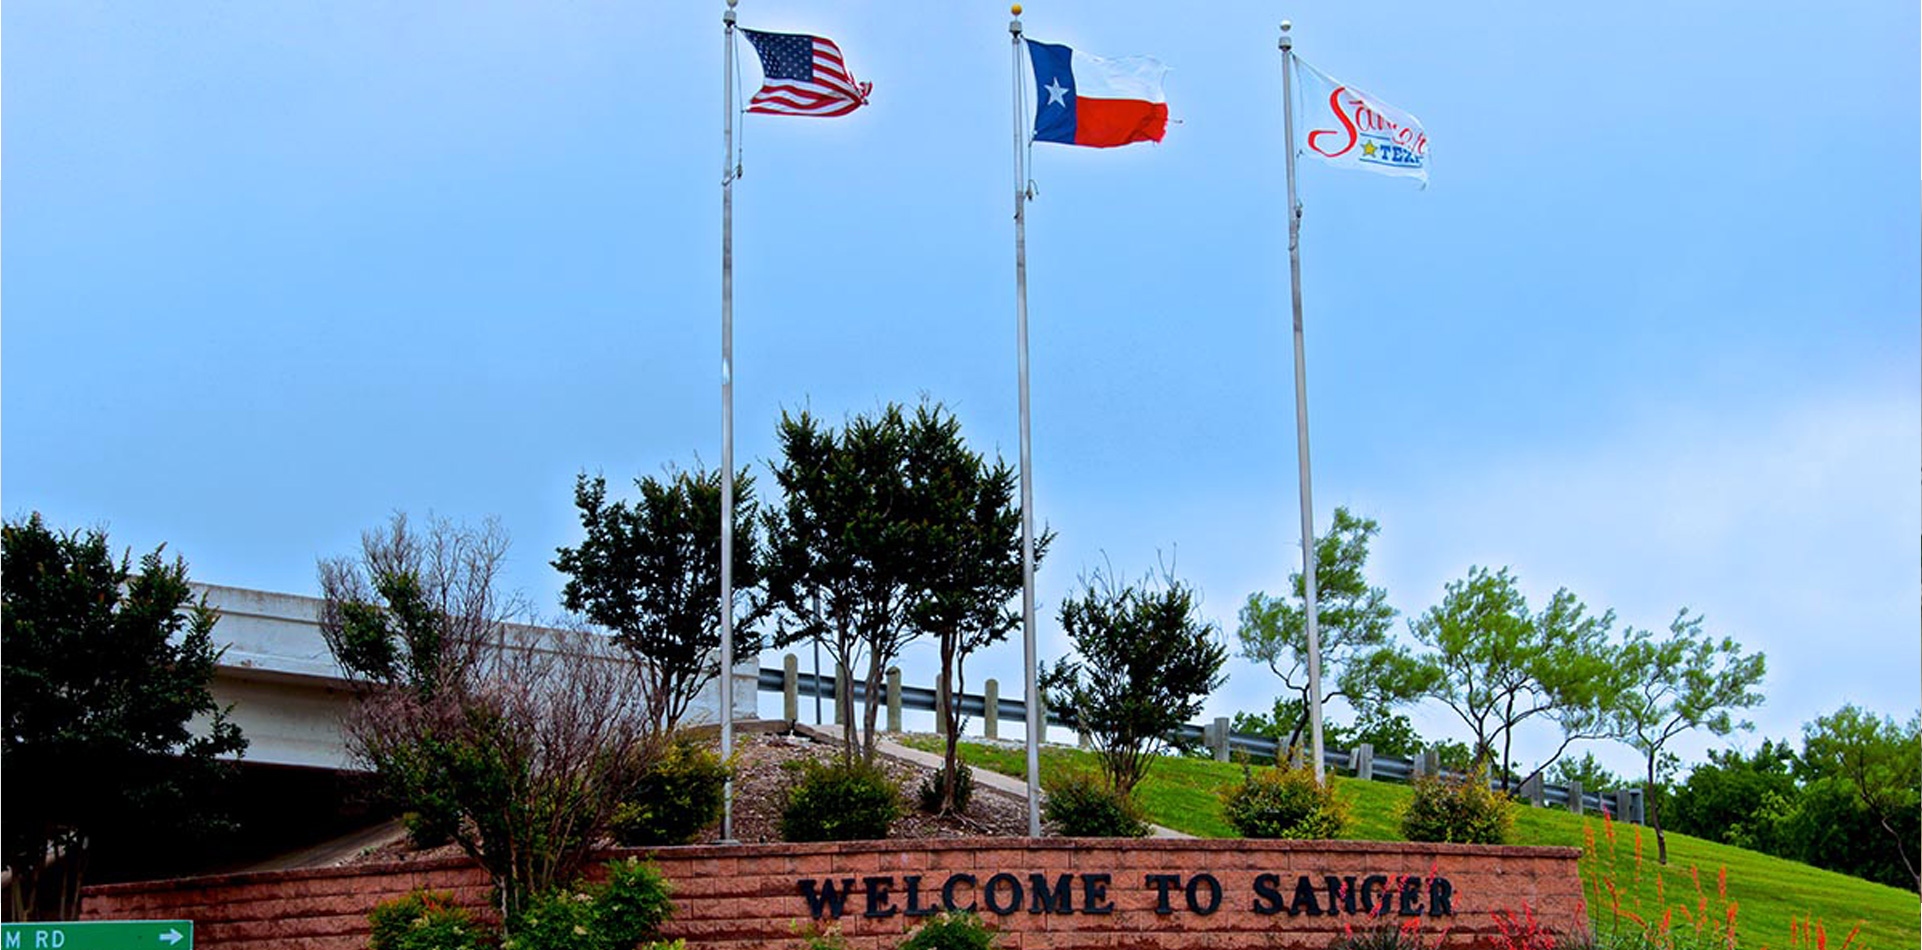 Sanger Area Chamber of Commerce